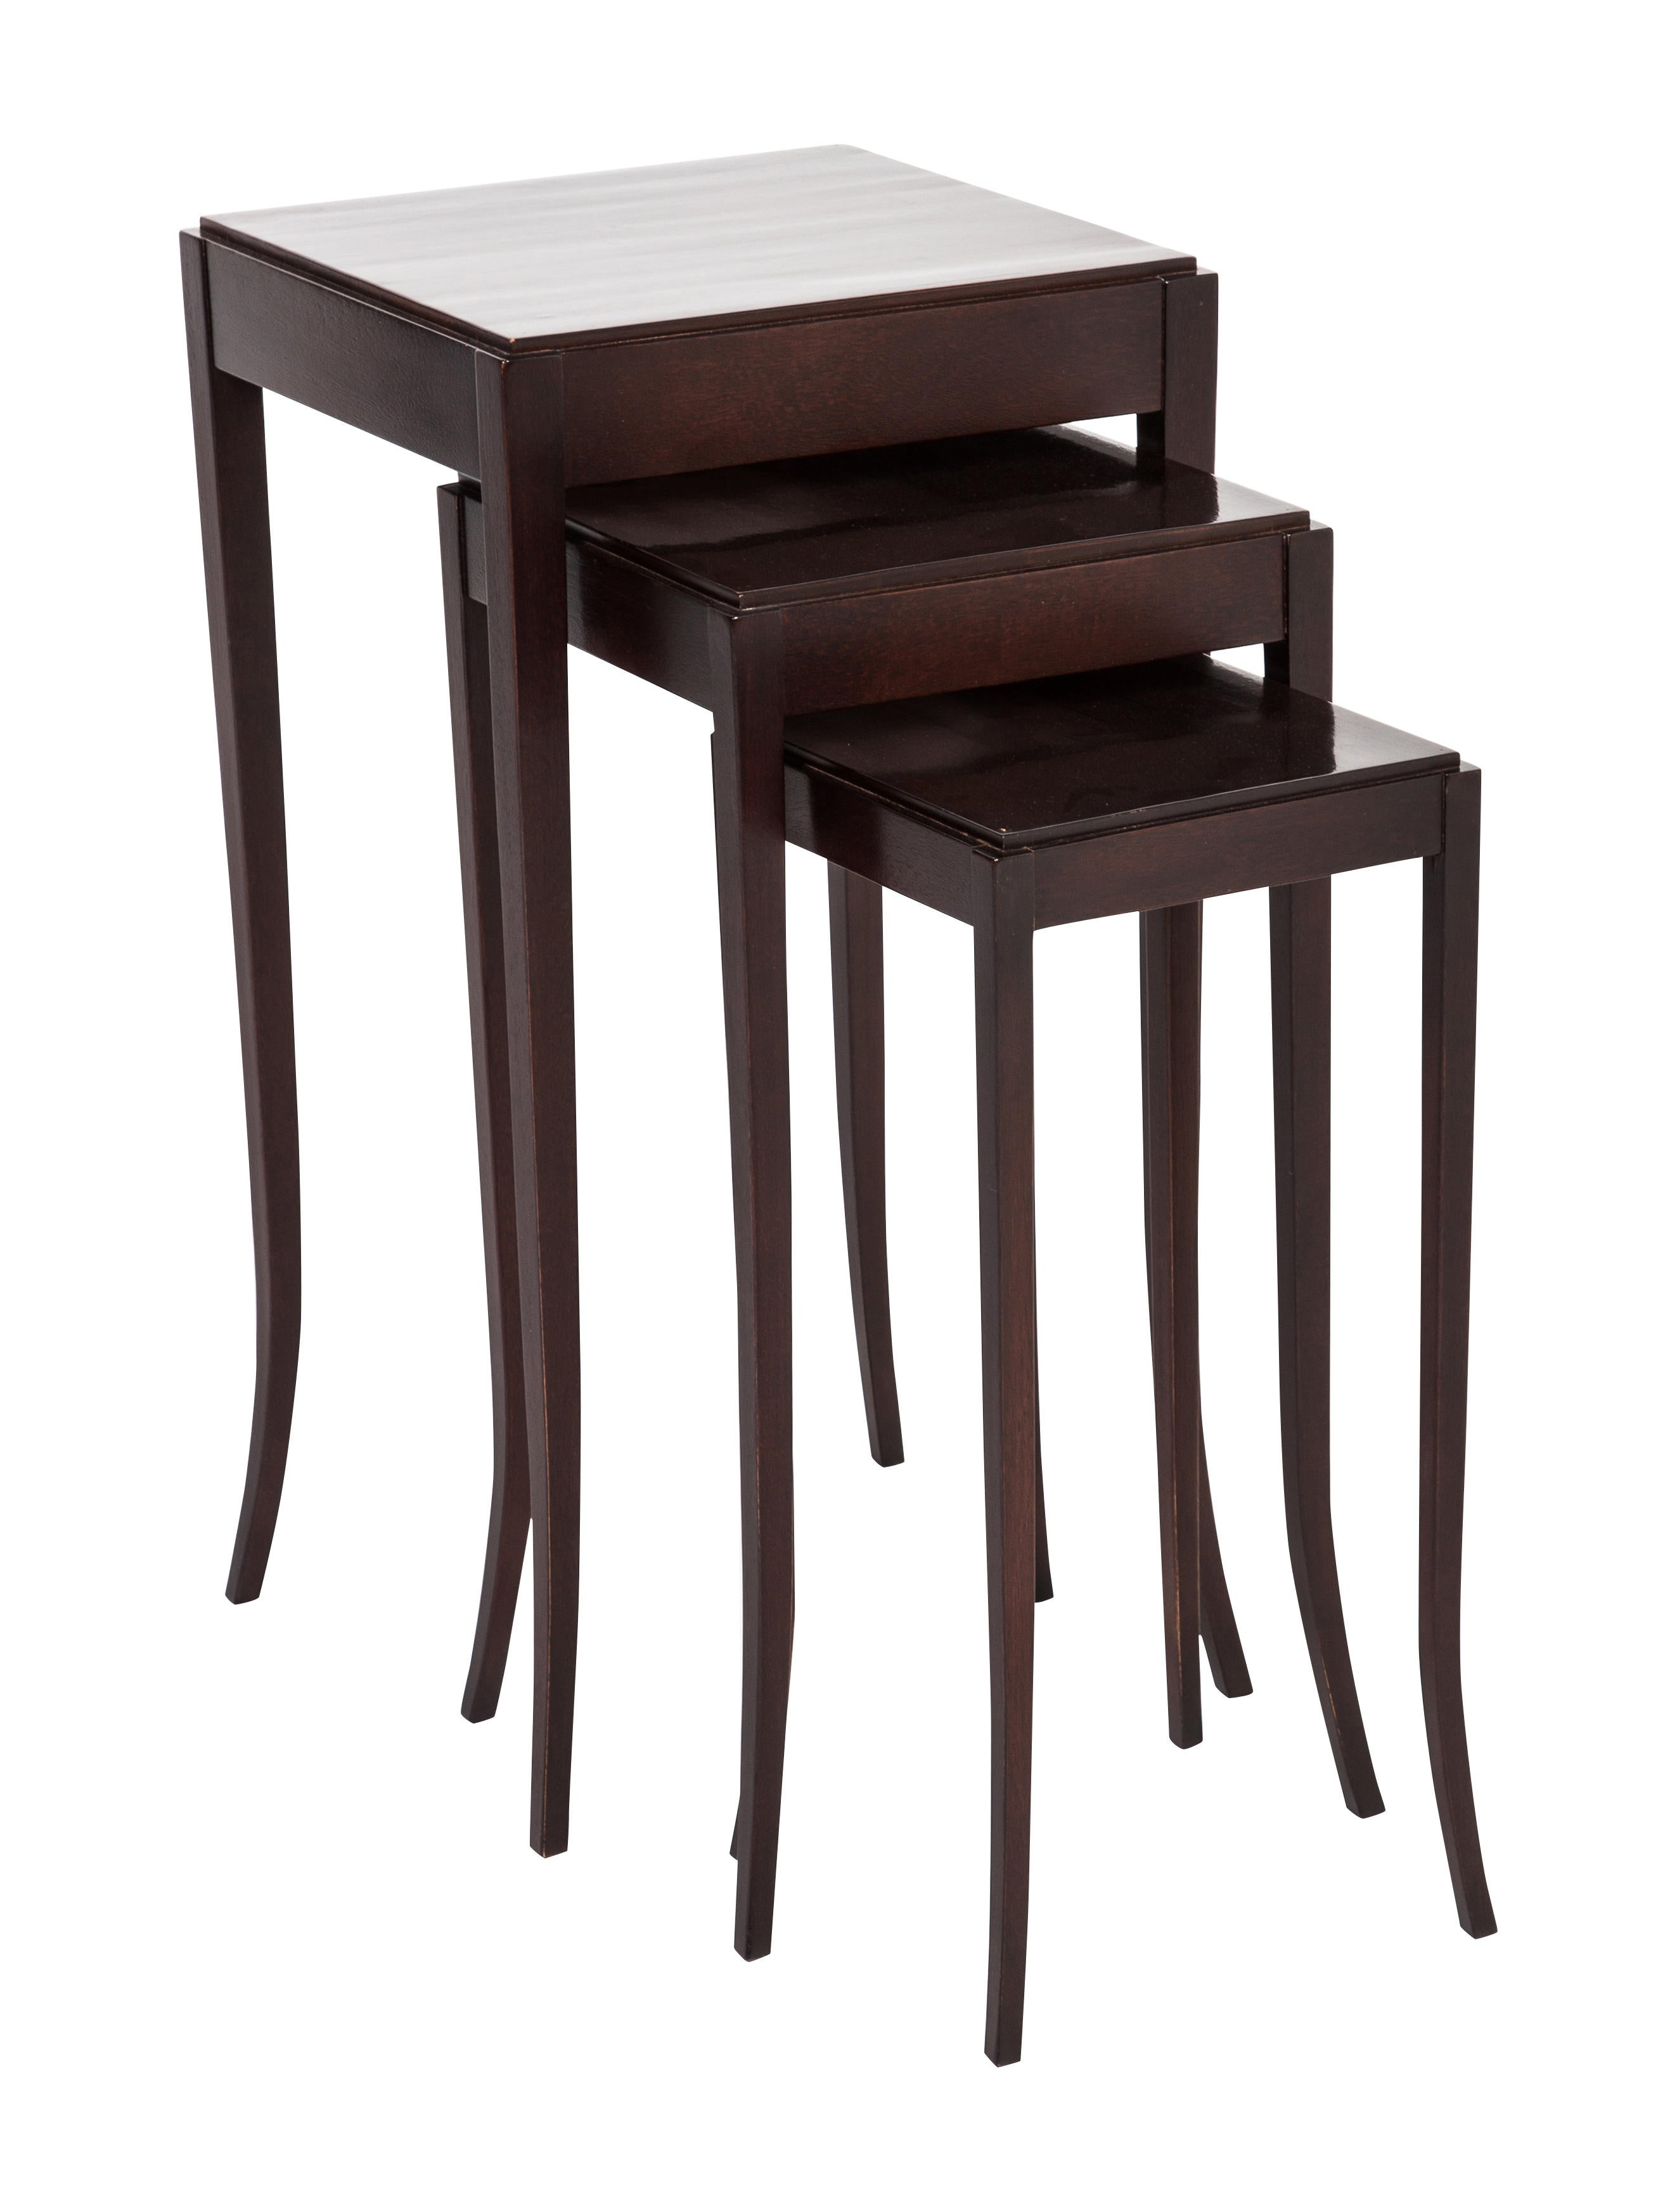 Baker barbara barry collection nesting tables furniture for Chair 6 mt baker